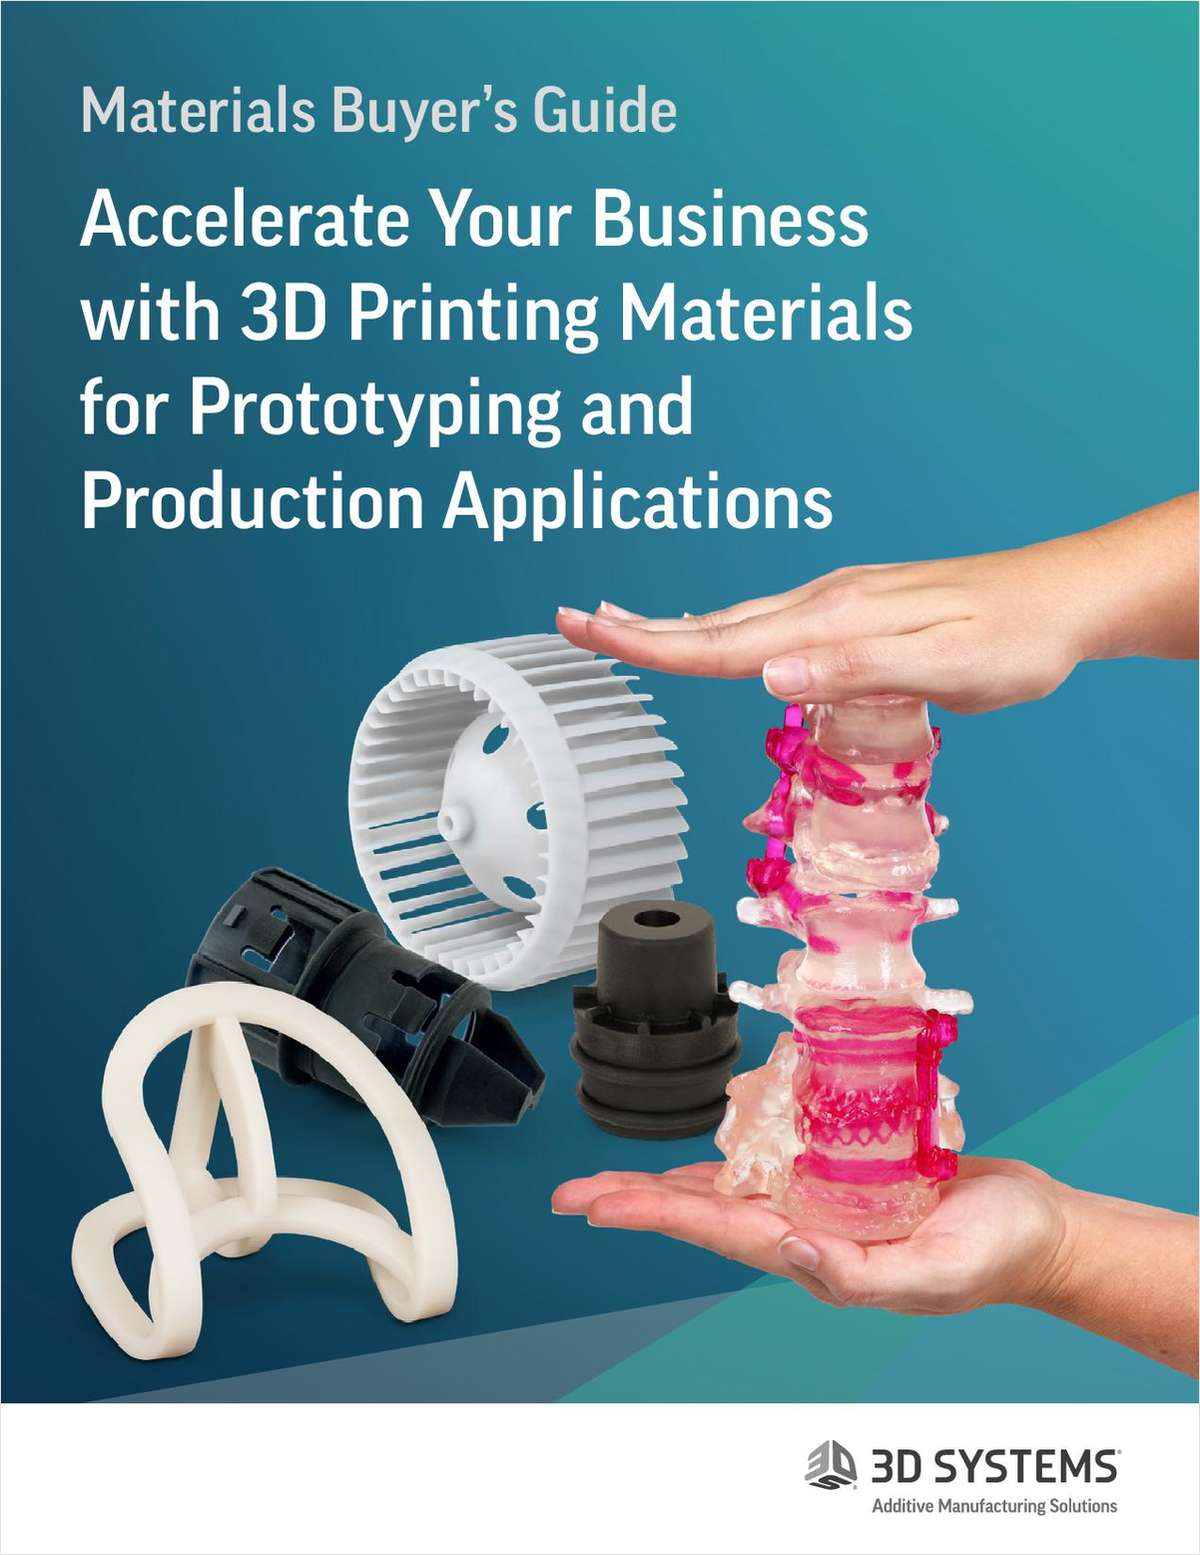 Accelerate Your Business with 3D Printing Materials for Prototyping and Production Applications